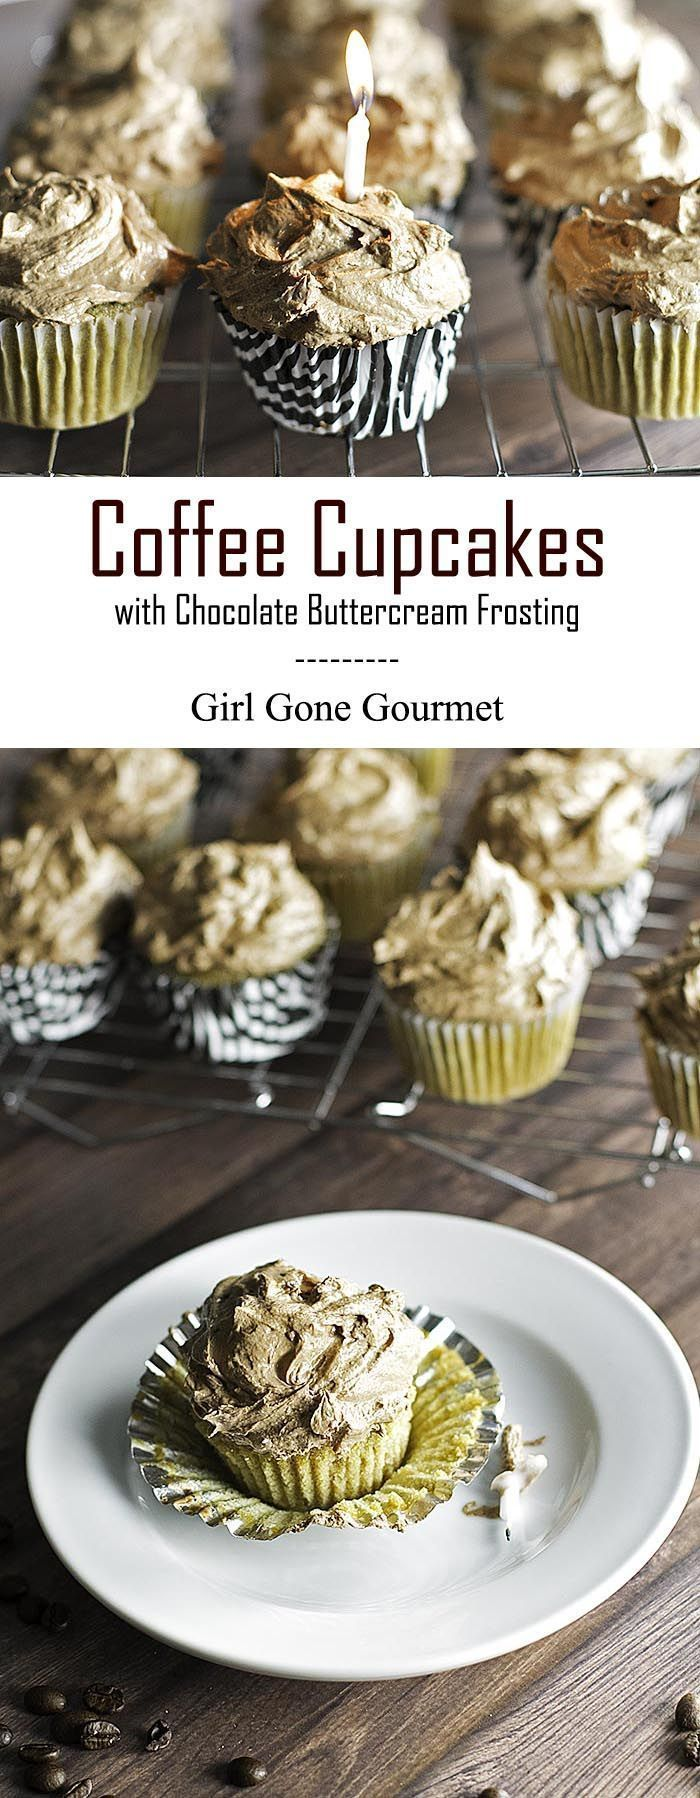 Coffee cupcakes topped with a rich bittersweet chocolate frosting. | girlgonegourmet.com